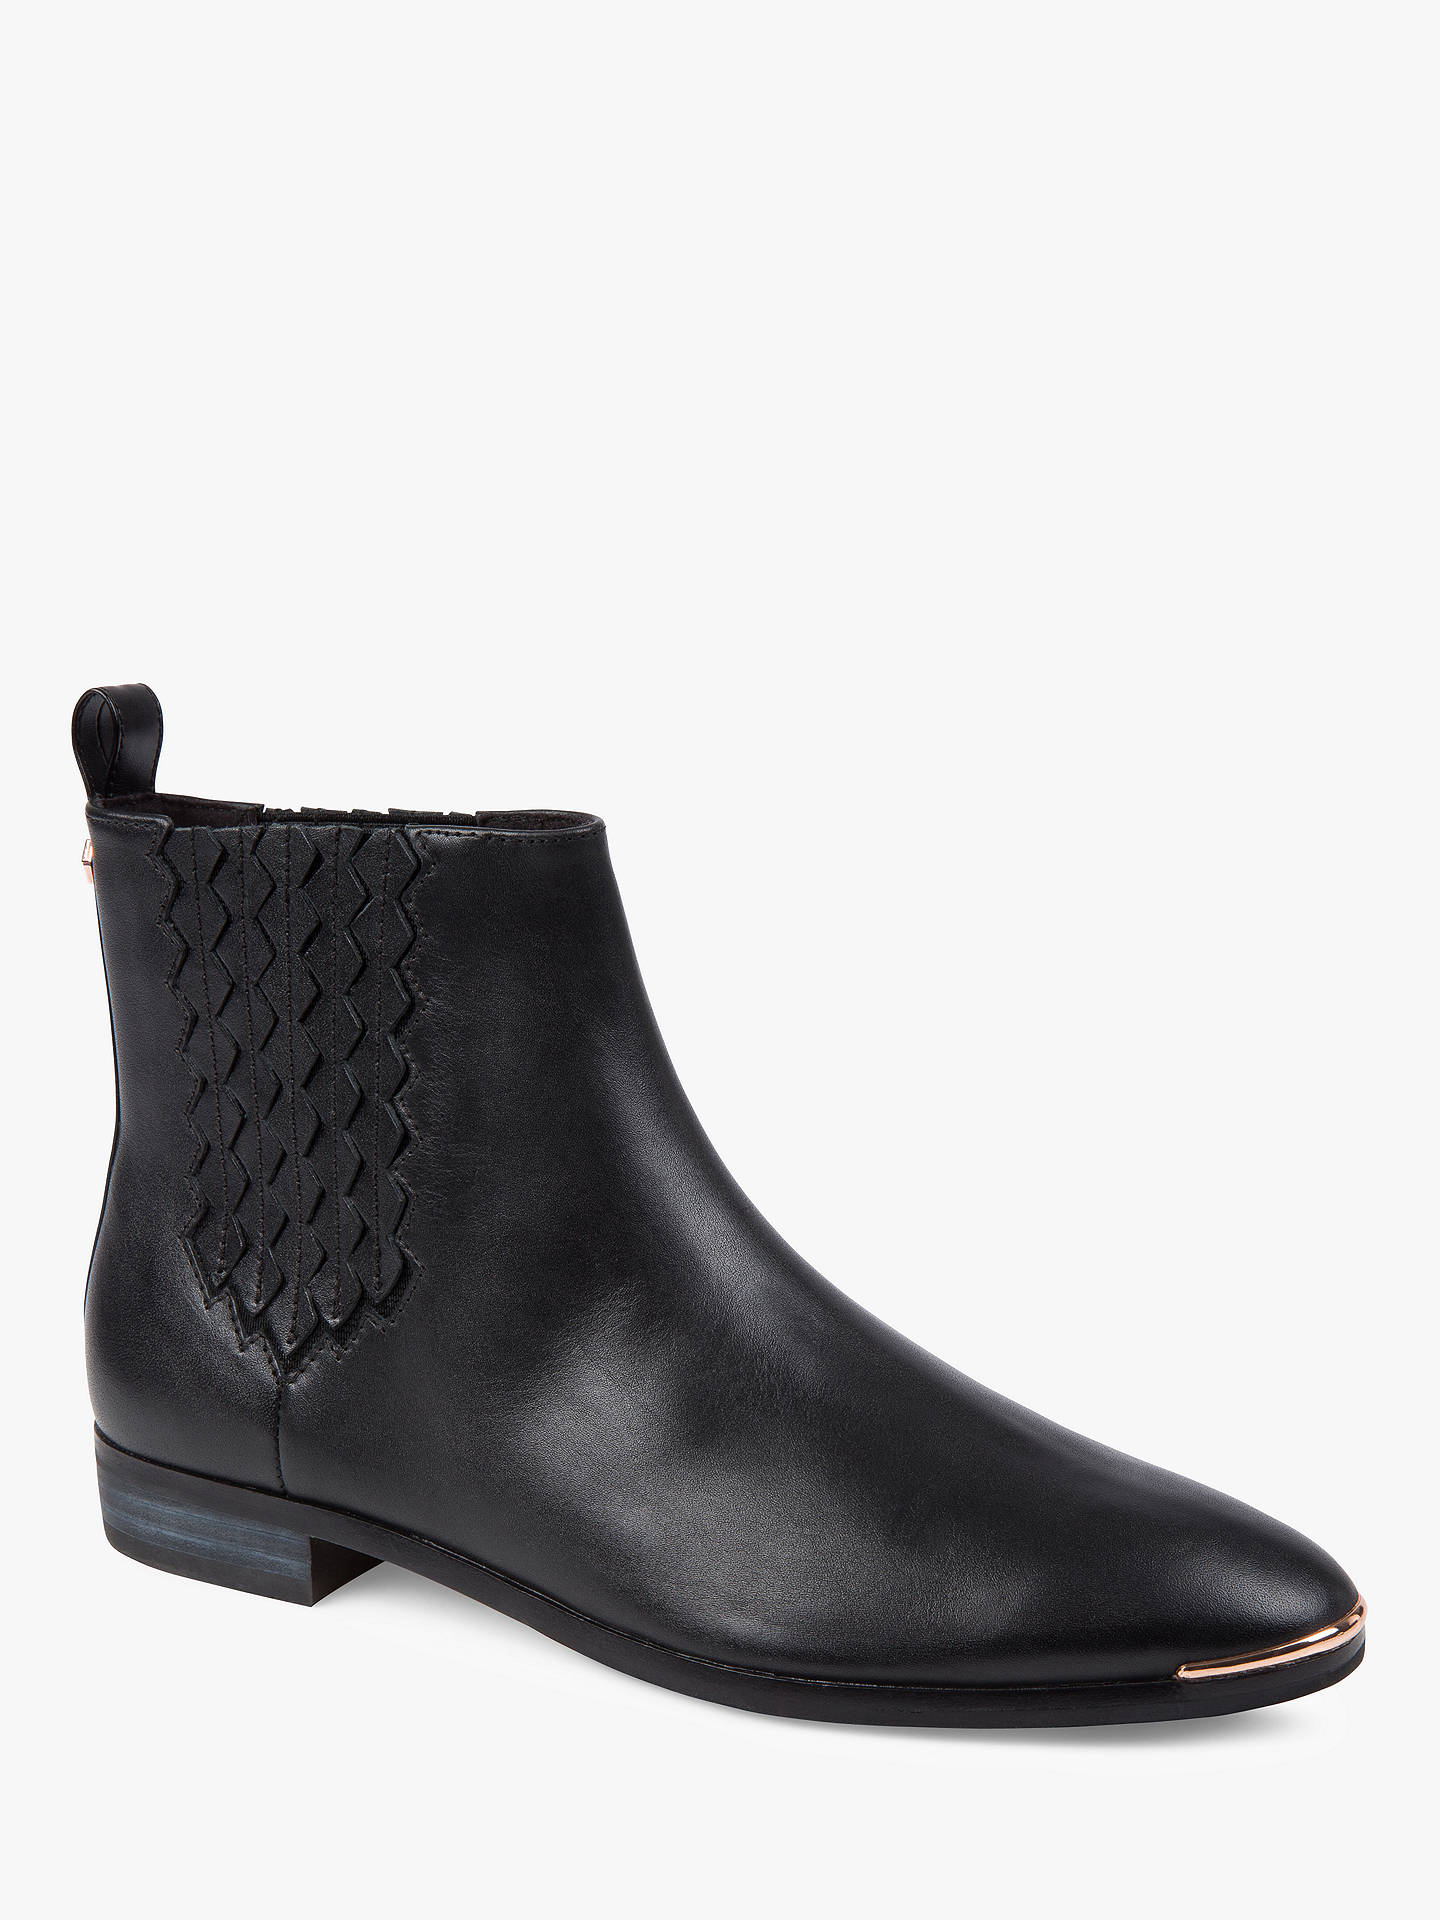 BuyTed Baker Liveca Chelsea Ankle Boots, Black Leather, 6 Online at johnlewis.com